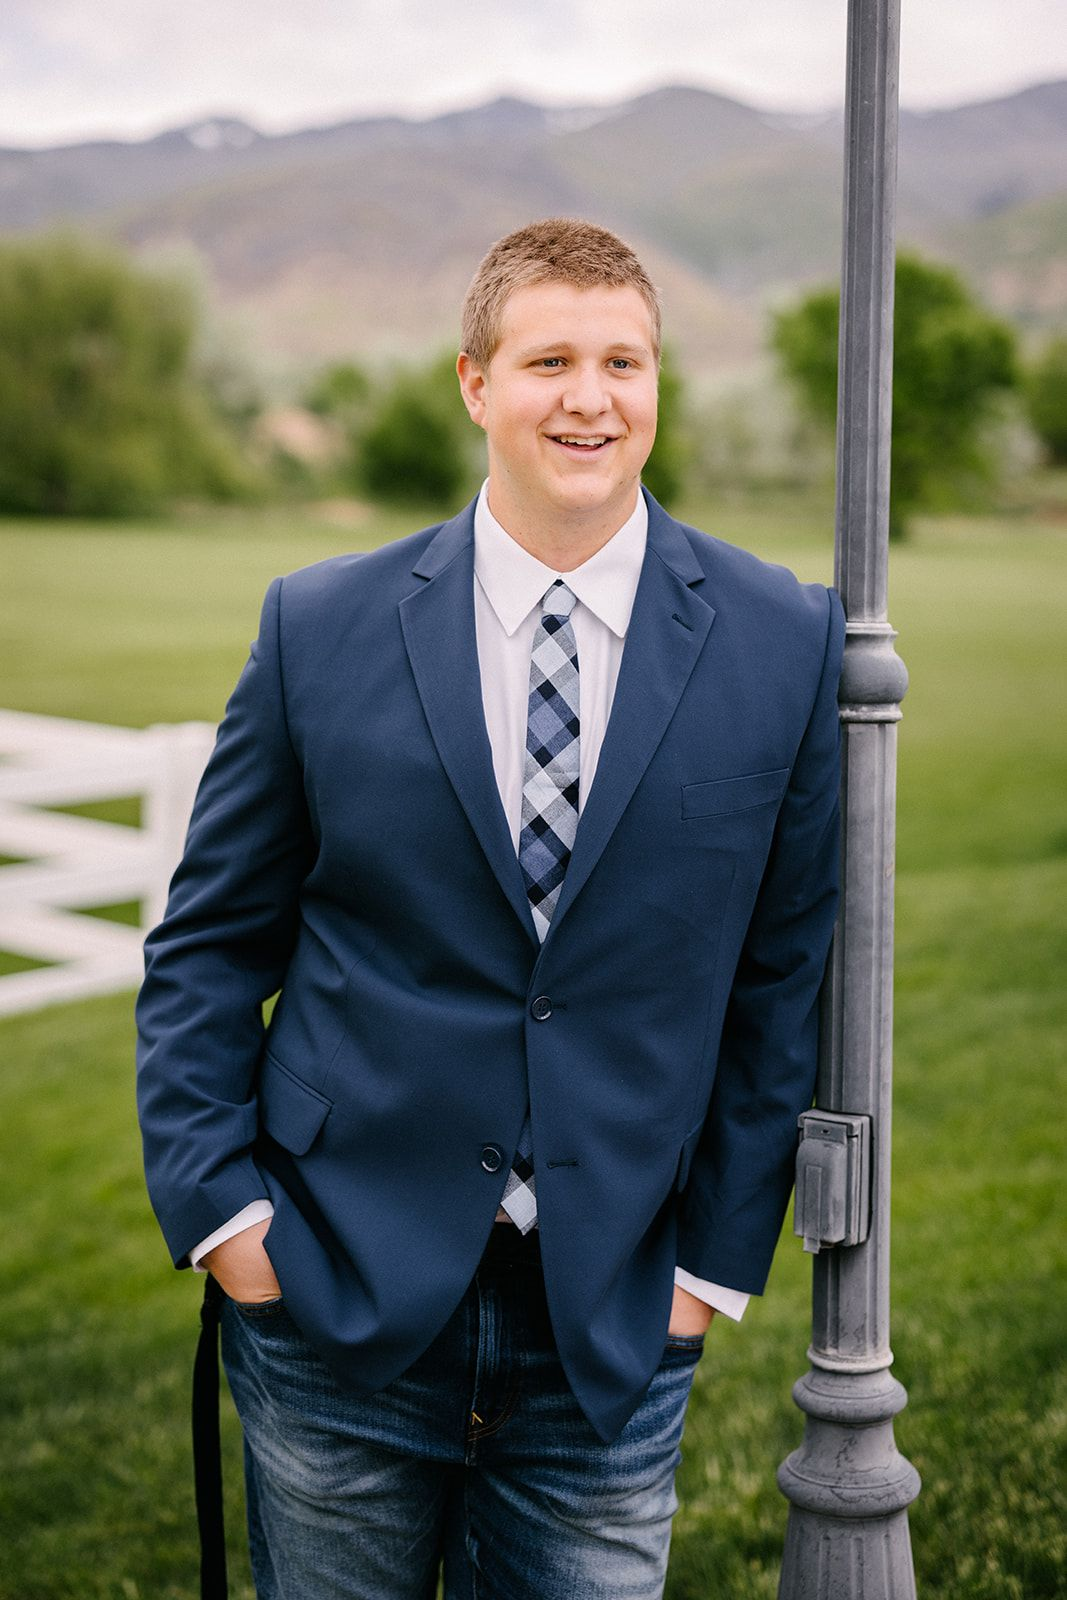 Senior portrait Layton utah high school photography photographer kaysville Farmington centerville